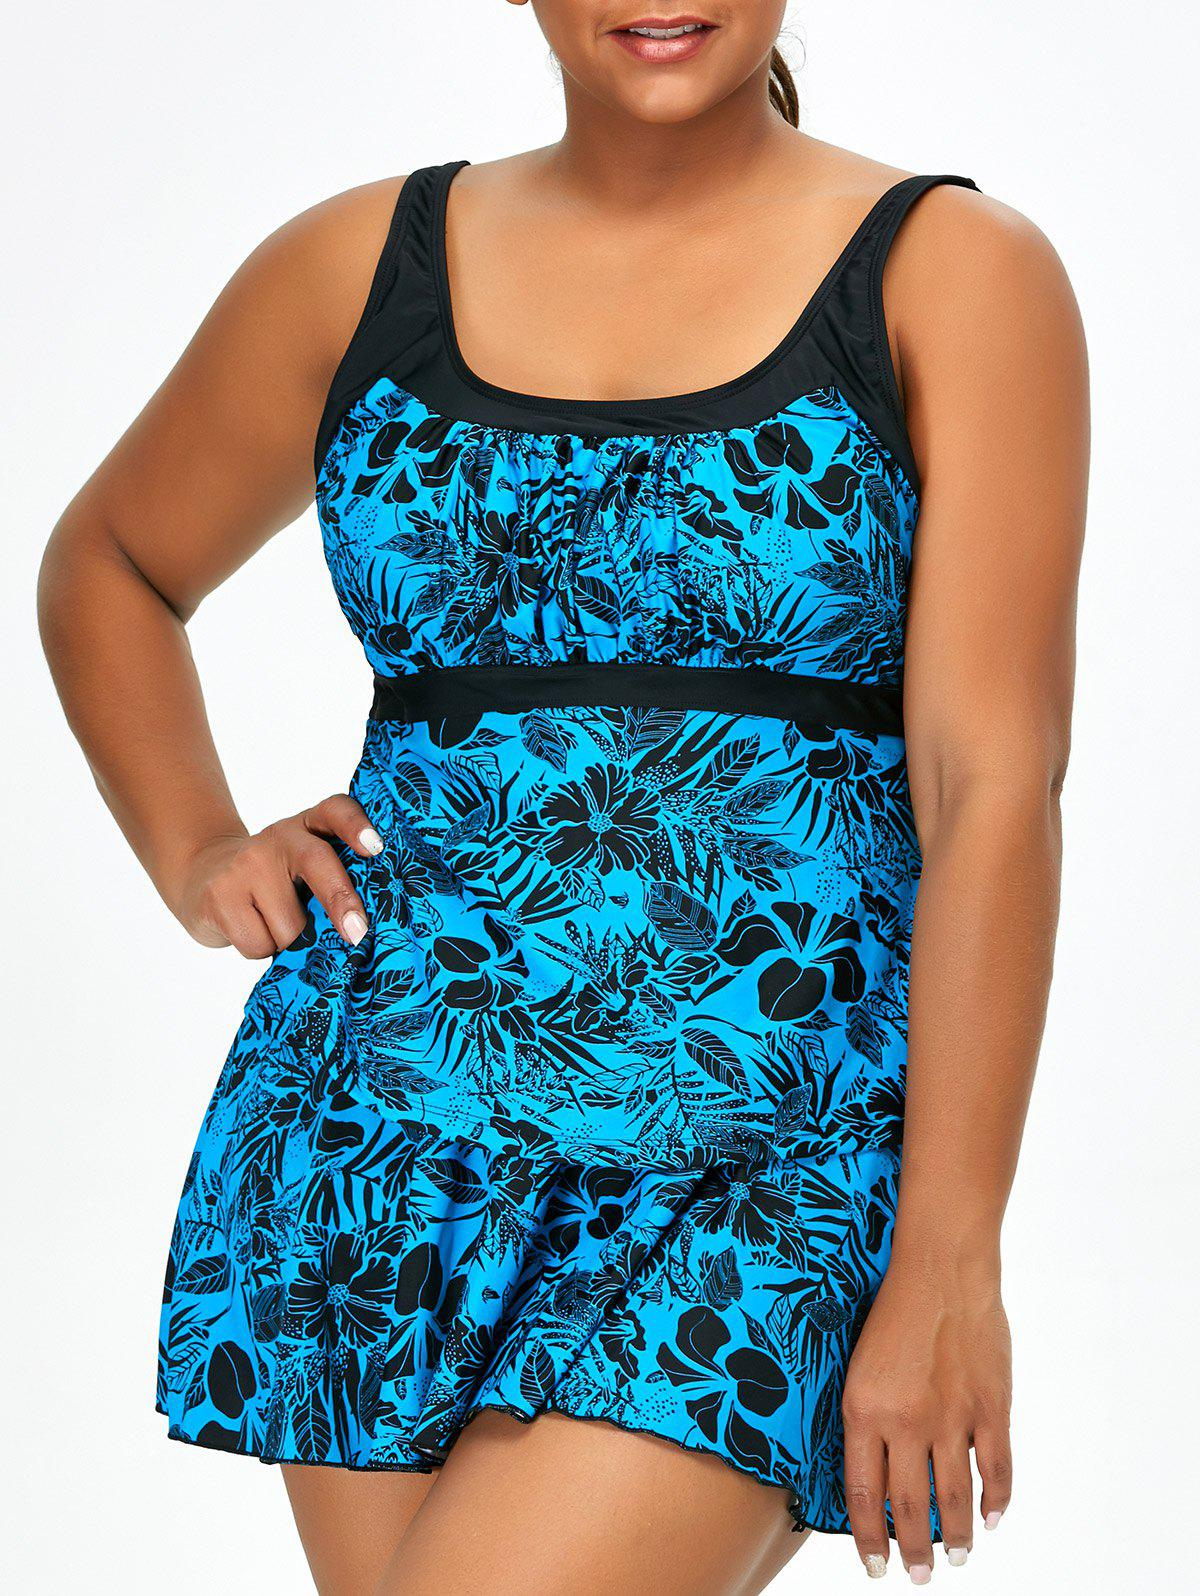 Plus Size Floral Three-Piece SwimwearWOMEN<br><br>Size: 4XL; Color: PEARL LAKE BLUE; Gender: For Women; Swimwear Type: Tankini; Material: Polyester; Bra Style: Padded; Support Type: Wire Free; Pattern Type: Floral; Waist: High Waisted; Weight: 0.360kg; Package Contents: 1 x Tank Top  1 x Briefs  1 x Skirt;